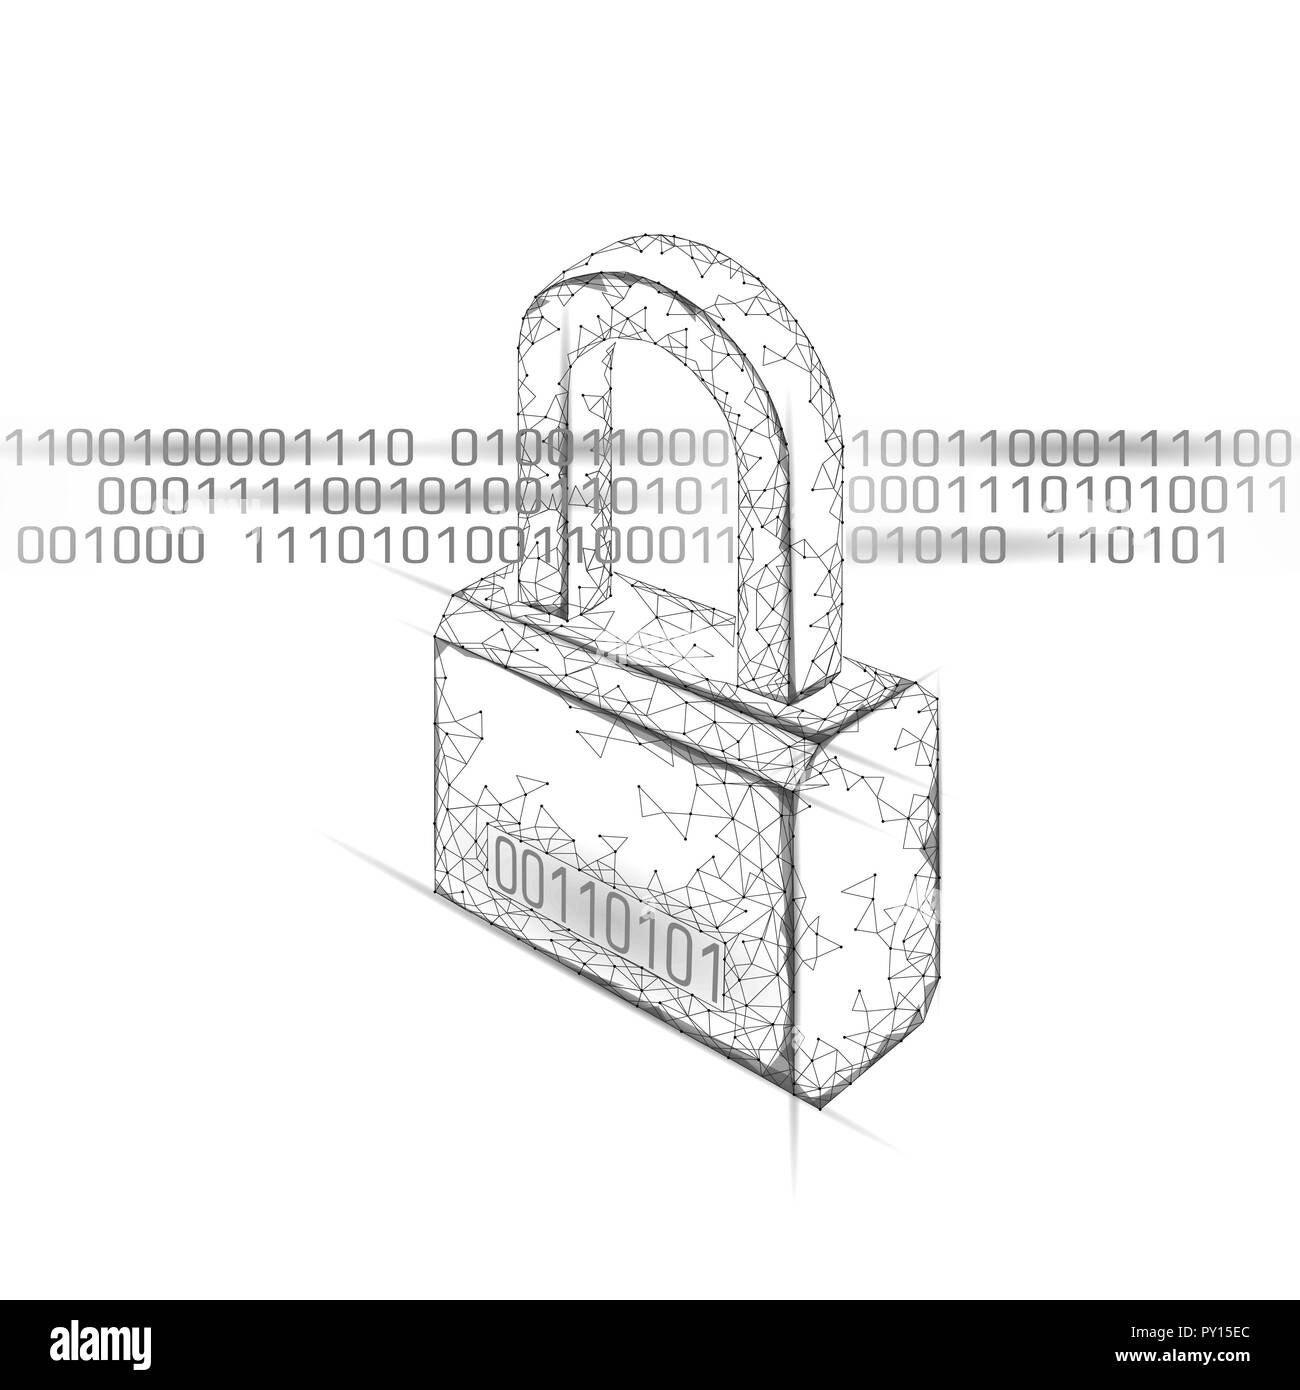 Cyber safety padlock on data mass. Internet security lock information privacy low poly polygonal future innovation technology network business concept vector illustration art - Stock Image